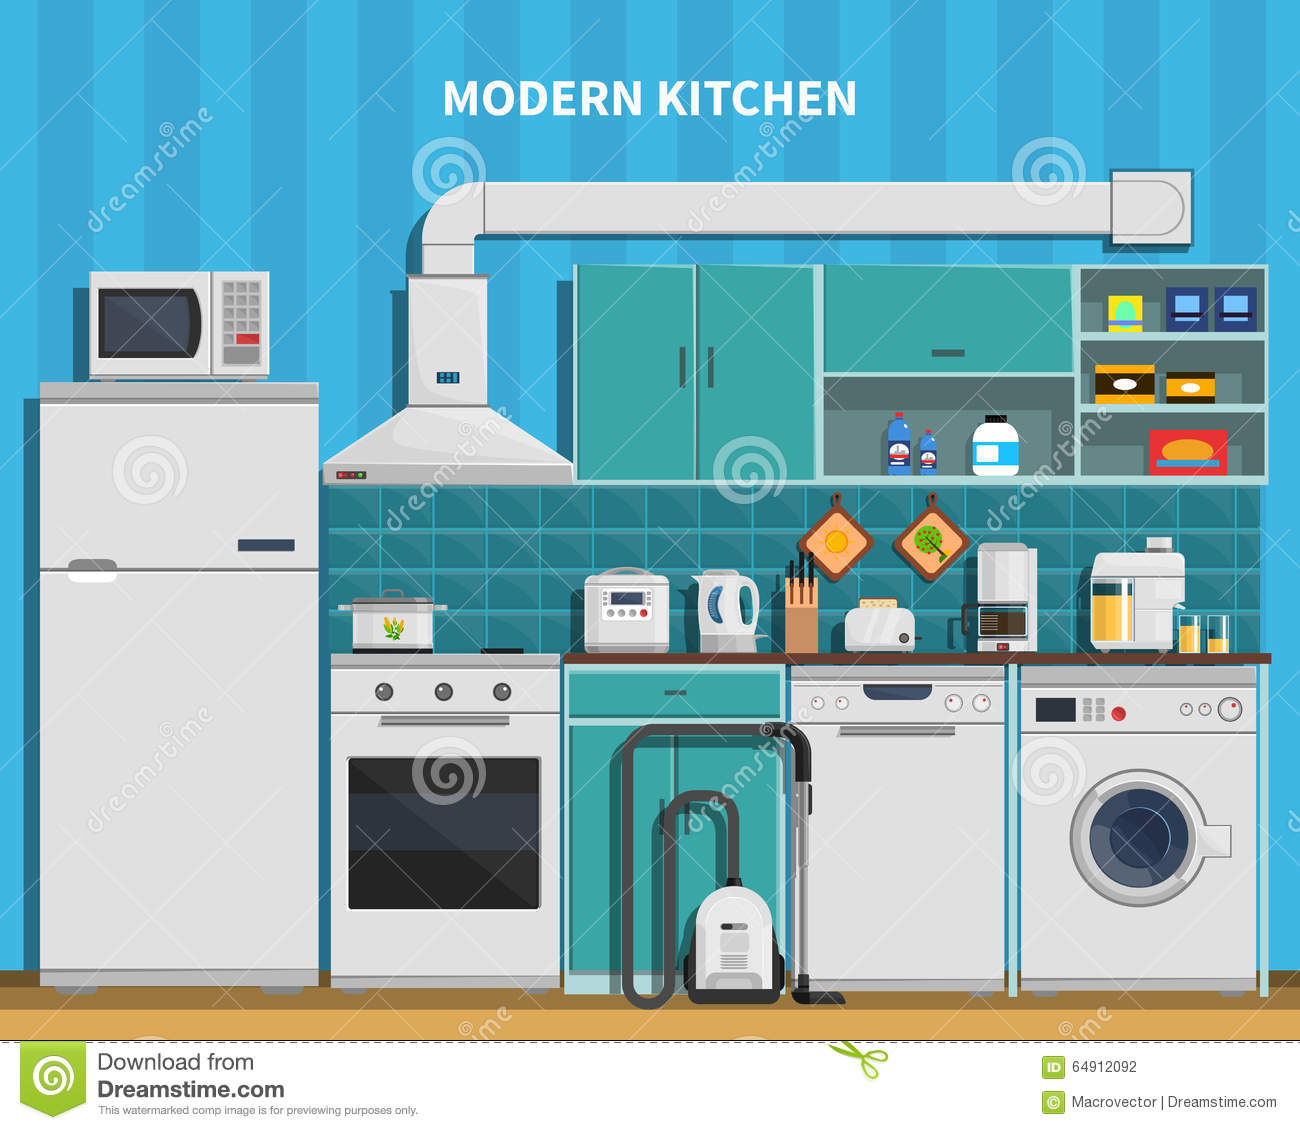 Modern Kitchen Background modern kitchen background stock vector - image: 64912092